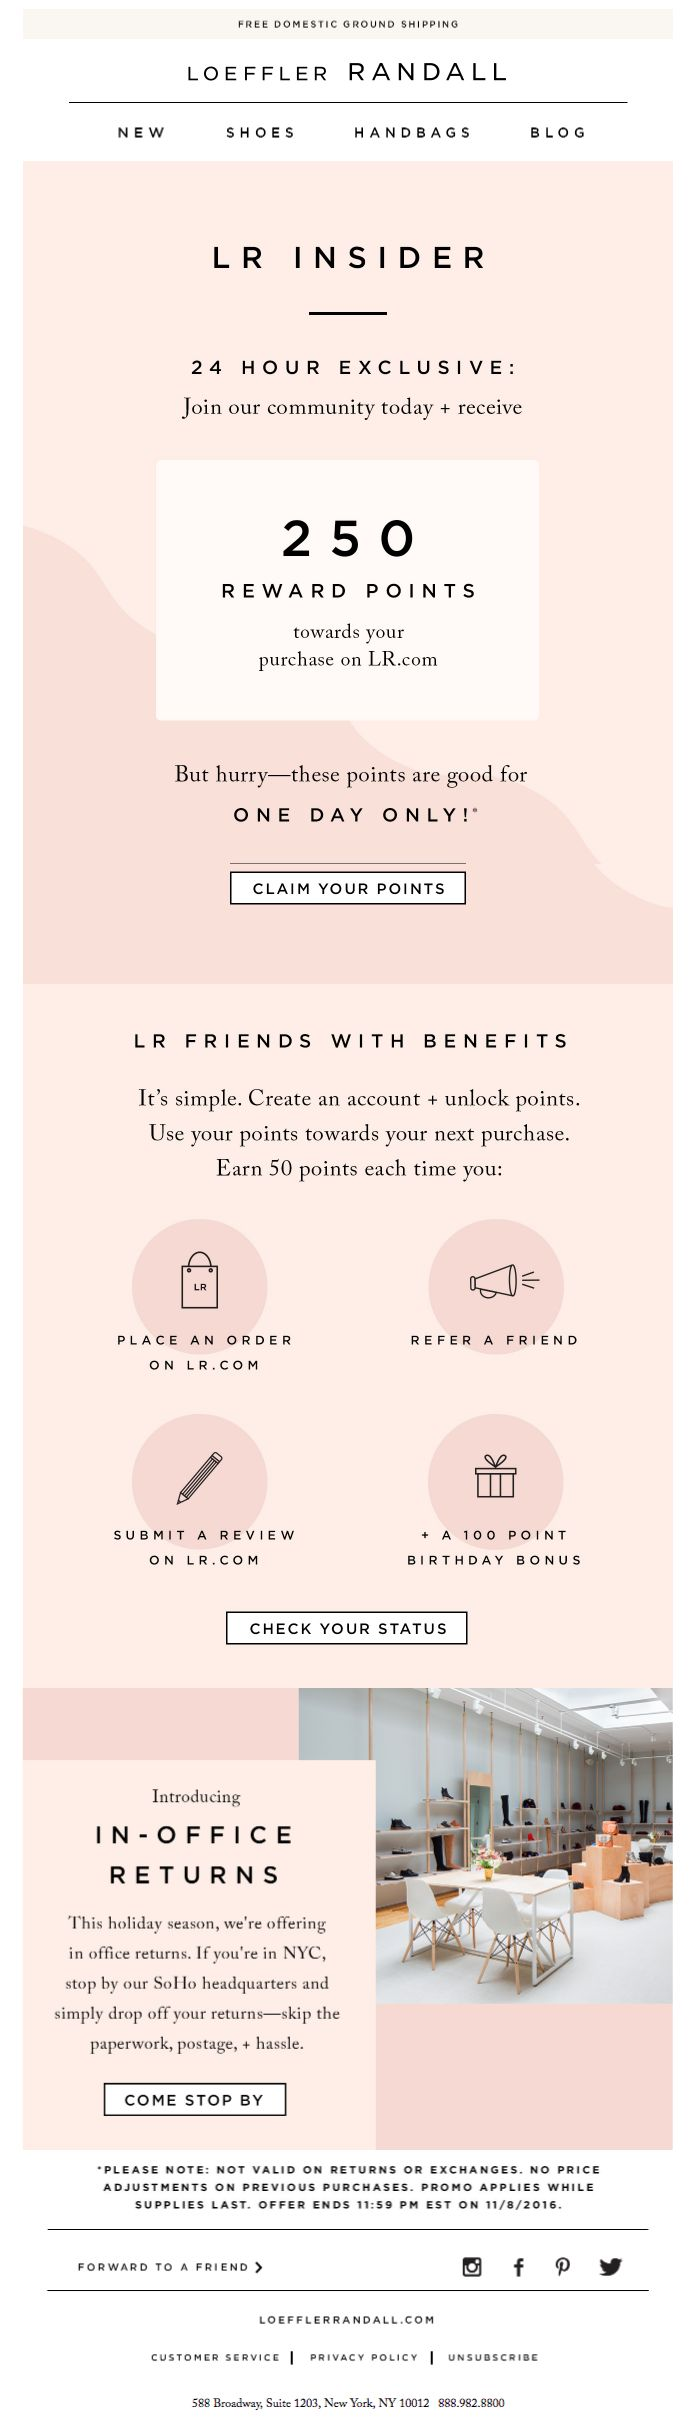 This email from Loeffler Randall promotes their loyalty program and gives customers the opportunity earn even more rewards. Talk about benefits!